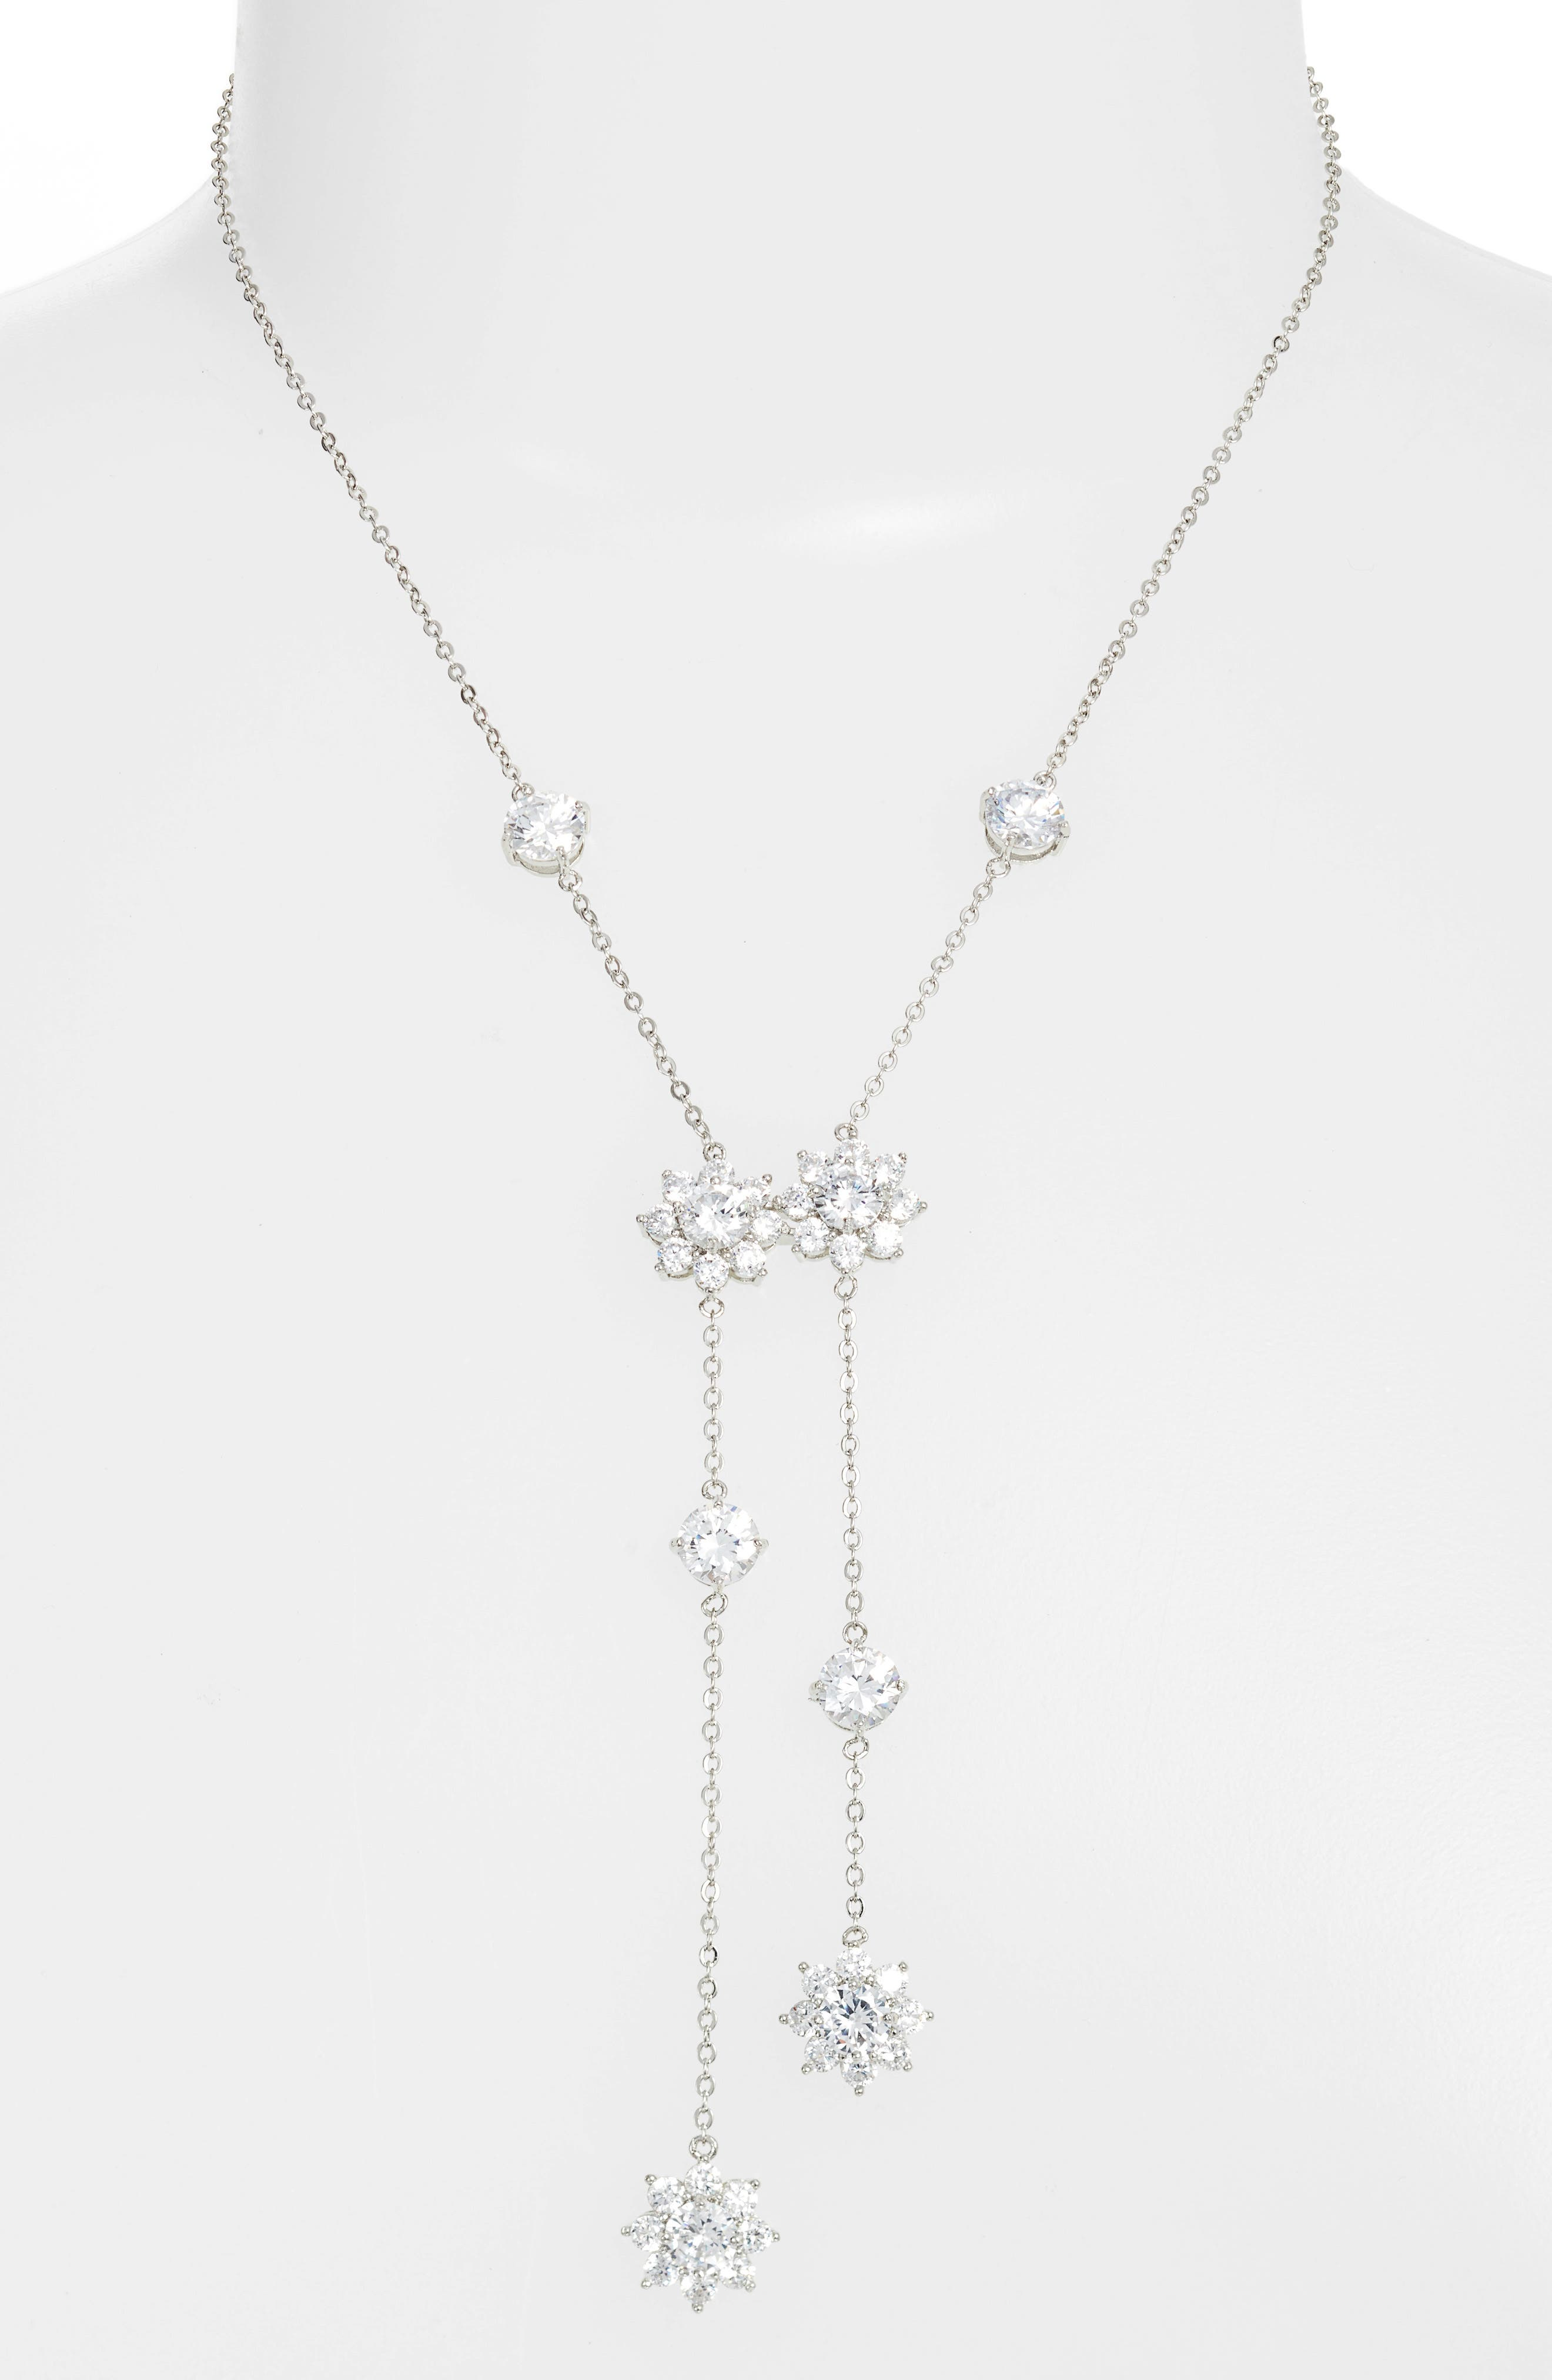 Small Flower Y Necklace,                         Main,                         color, Silver/ White Cz